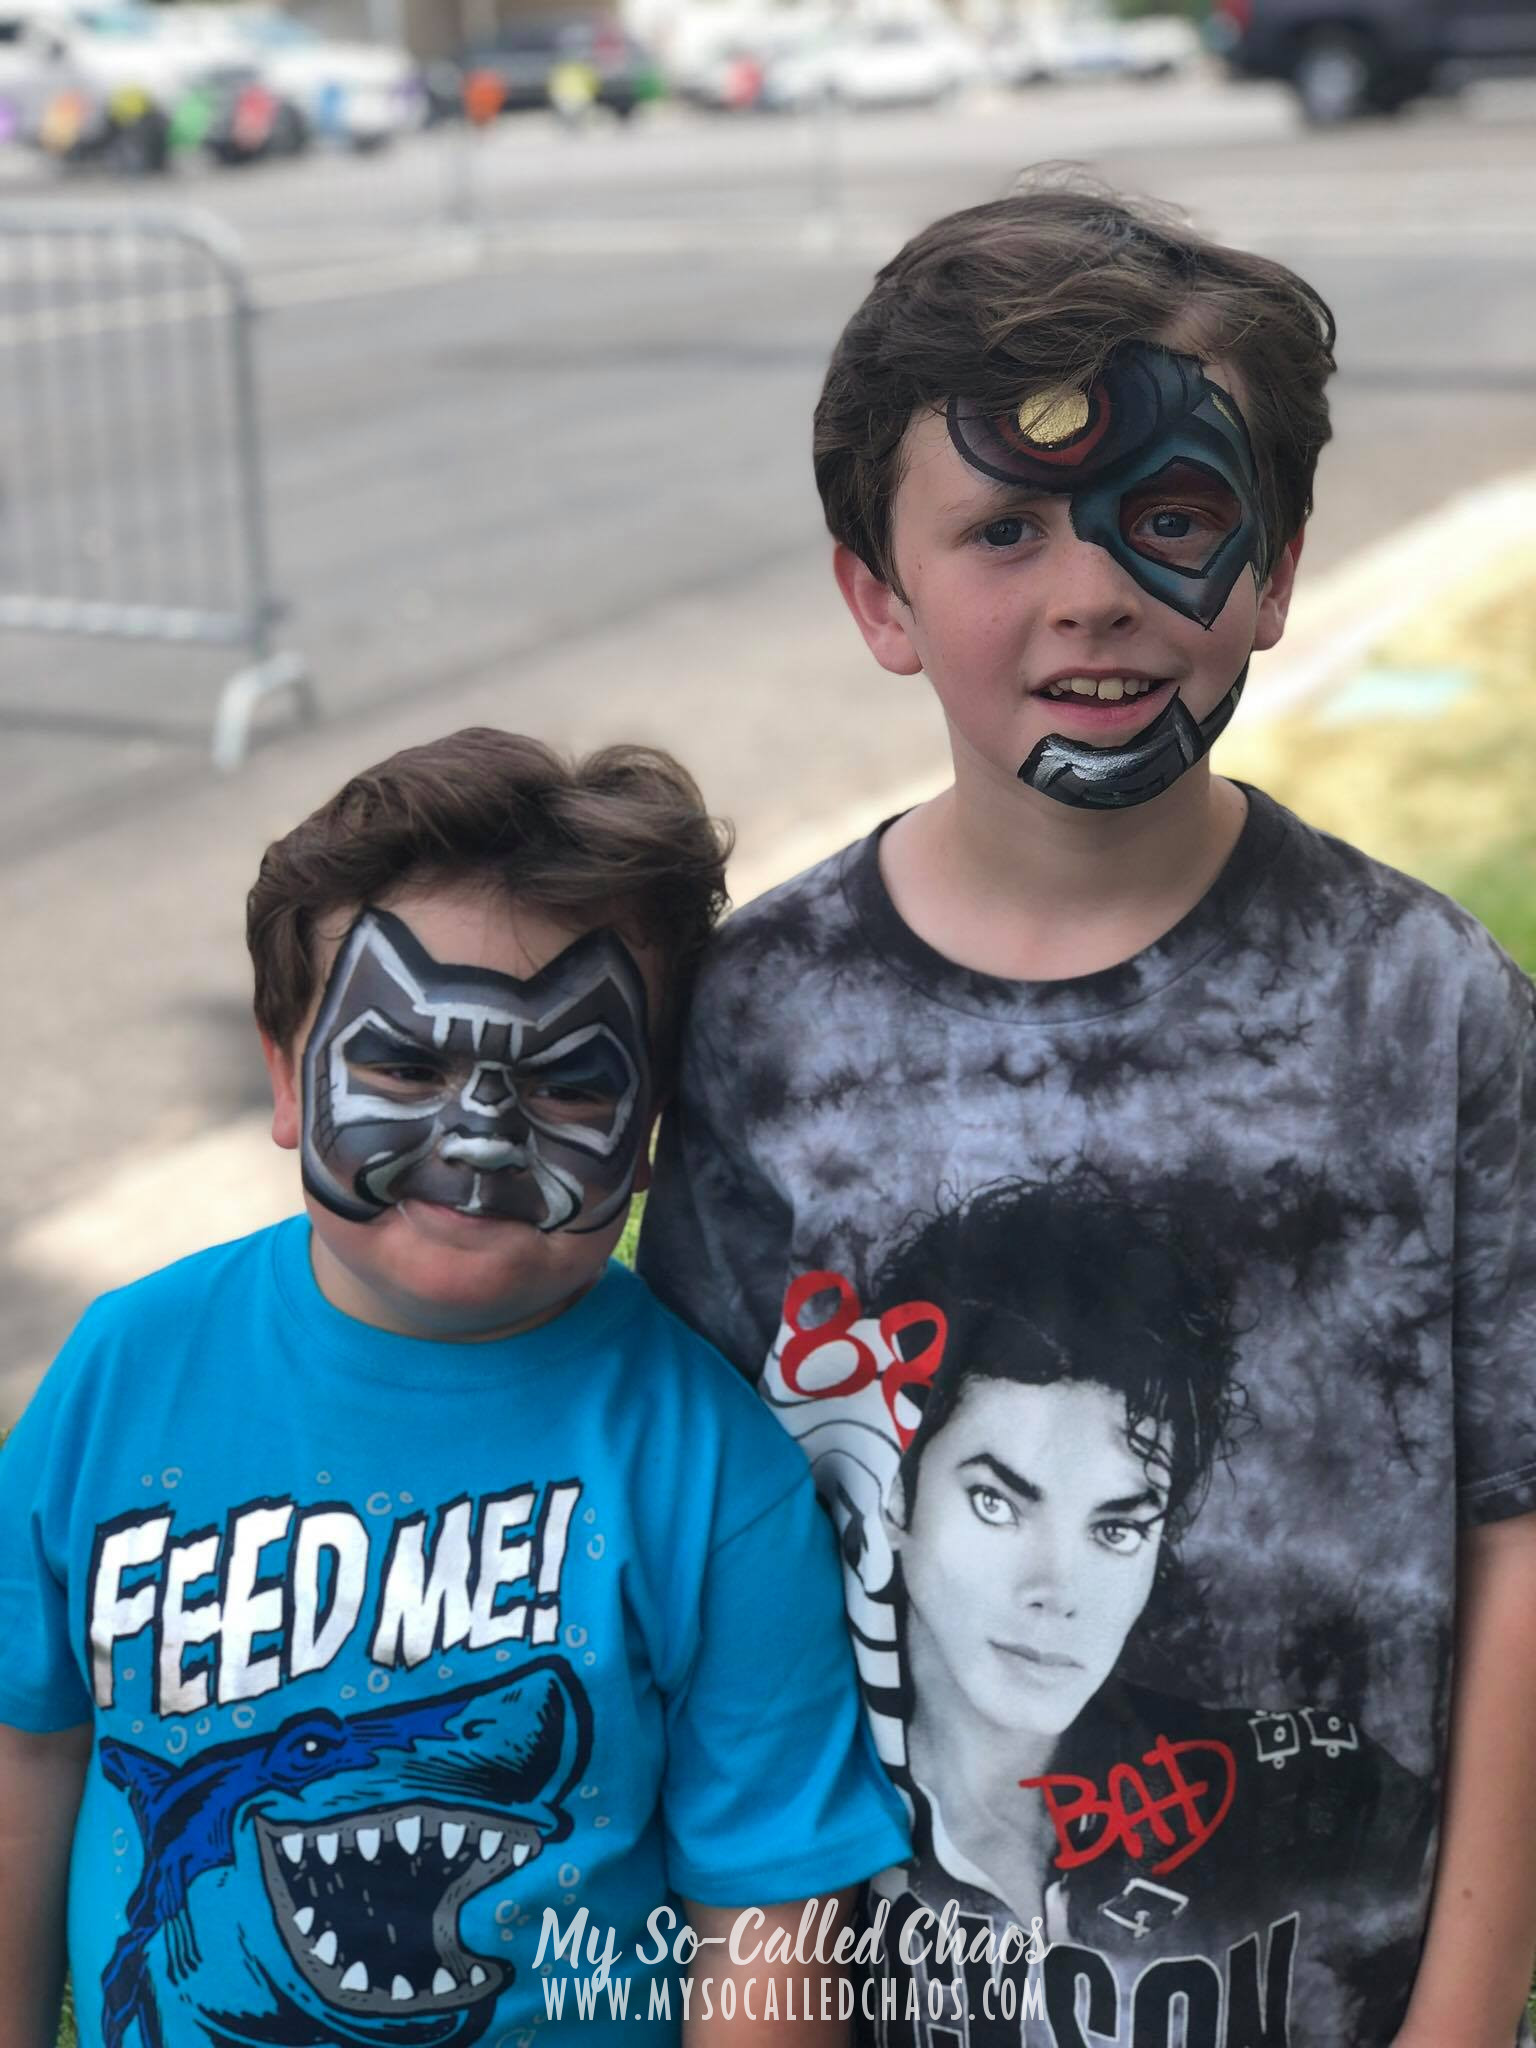 5 year old boy in a blue shirt with a Shark that says Feed Me! with his face painted like Black Panther standing next to a 9 year old boy wearing a Michael Jackson T-shirt who's face is painted like Cyborg.